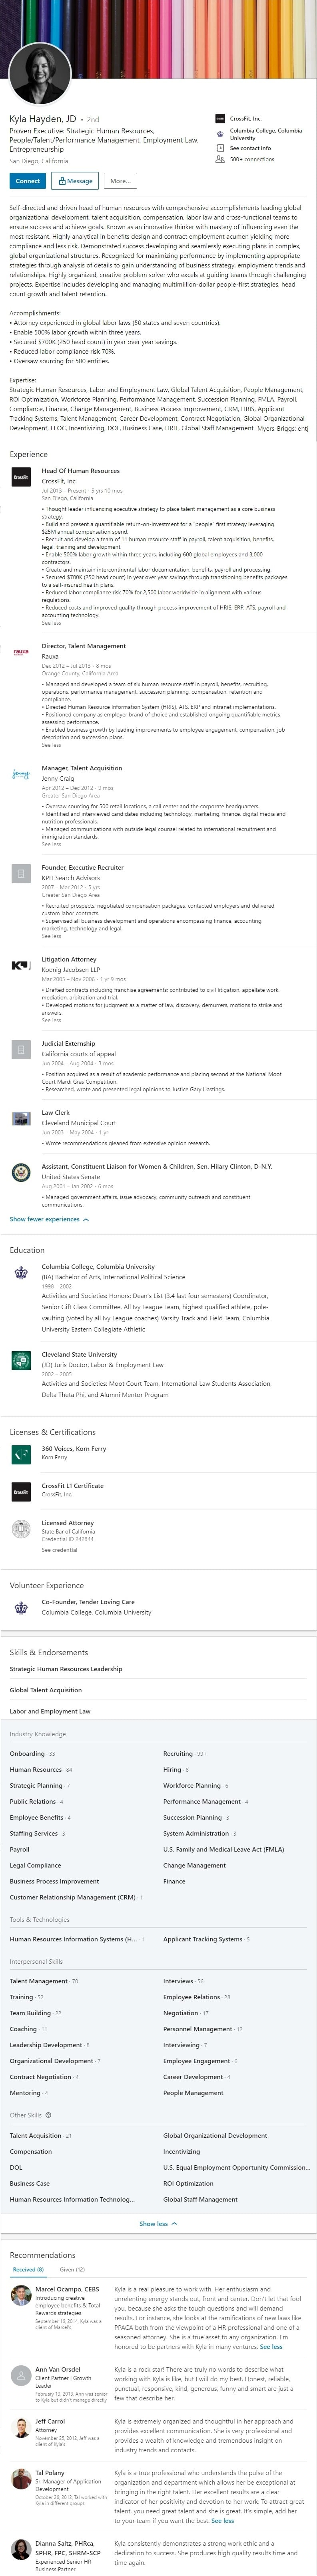 human resources director sample linkedin profile example 2448